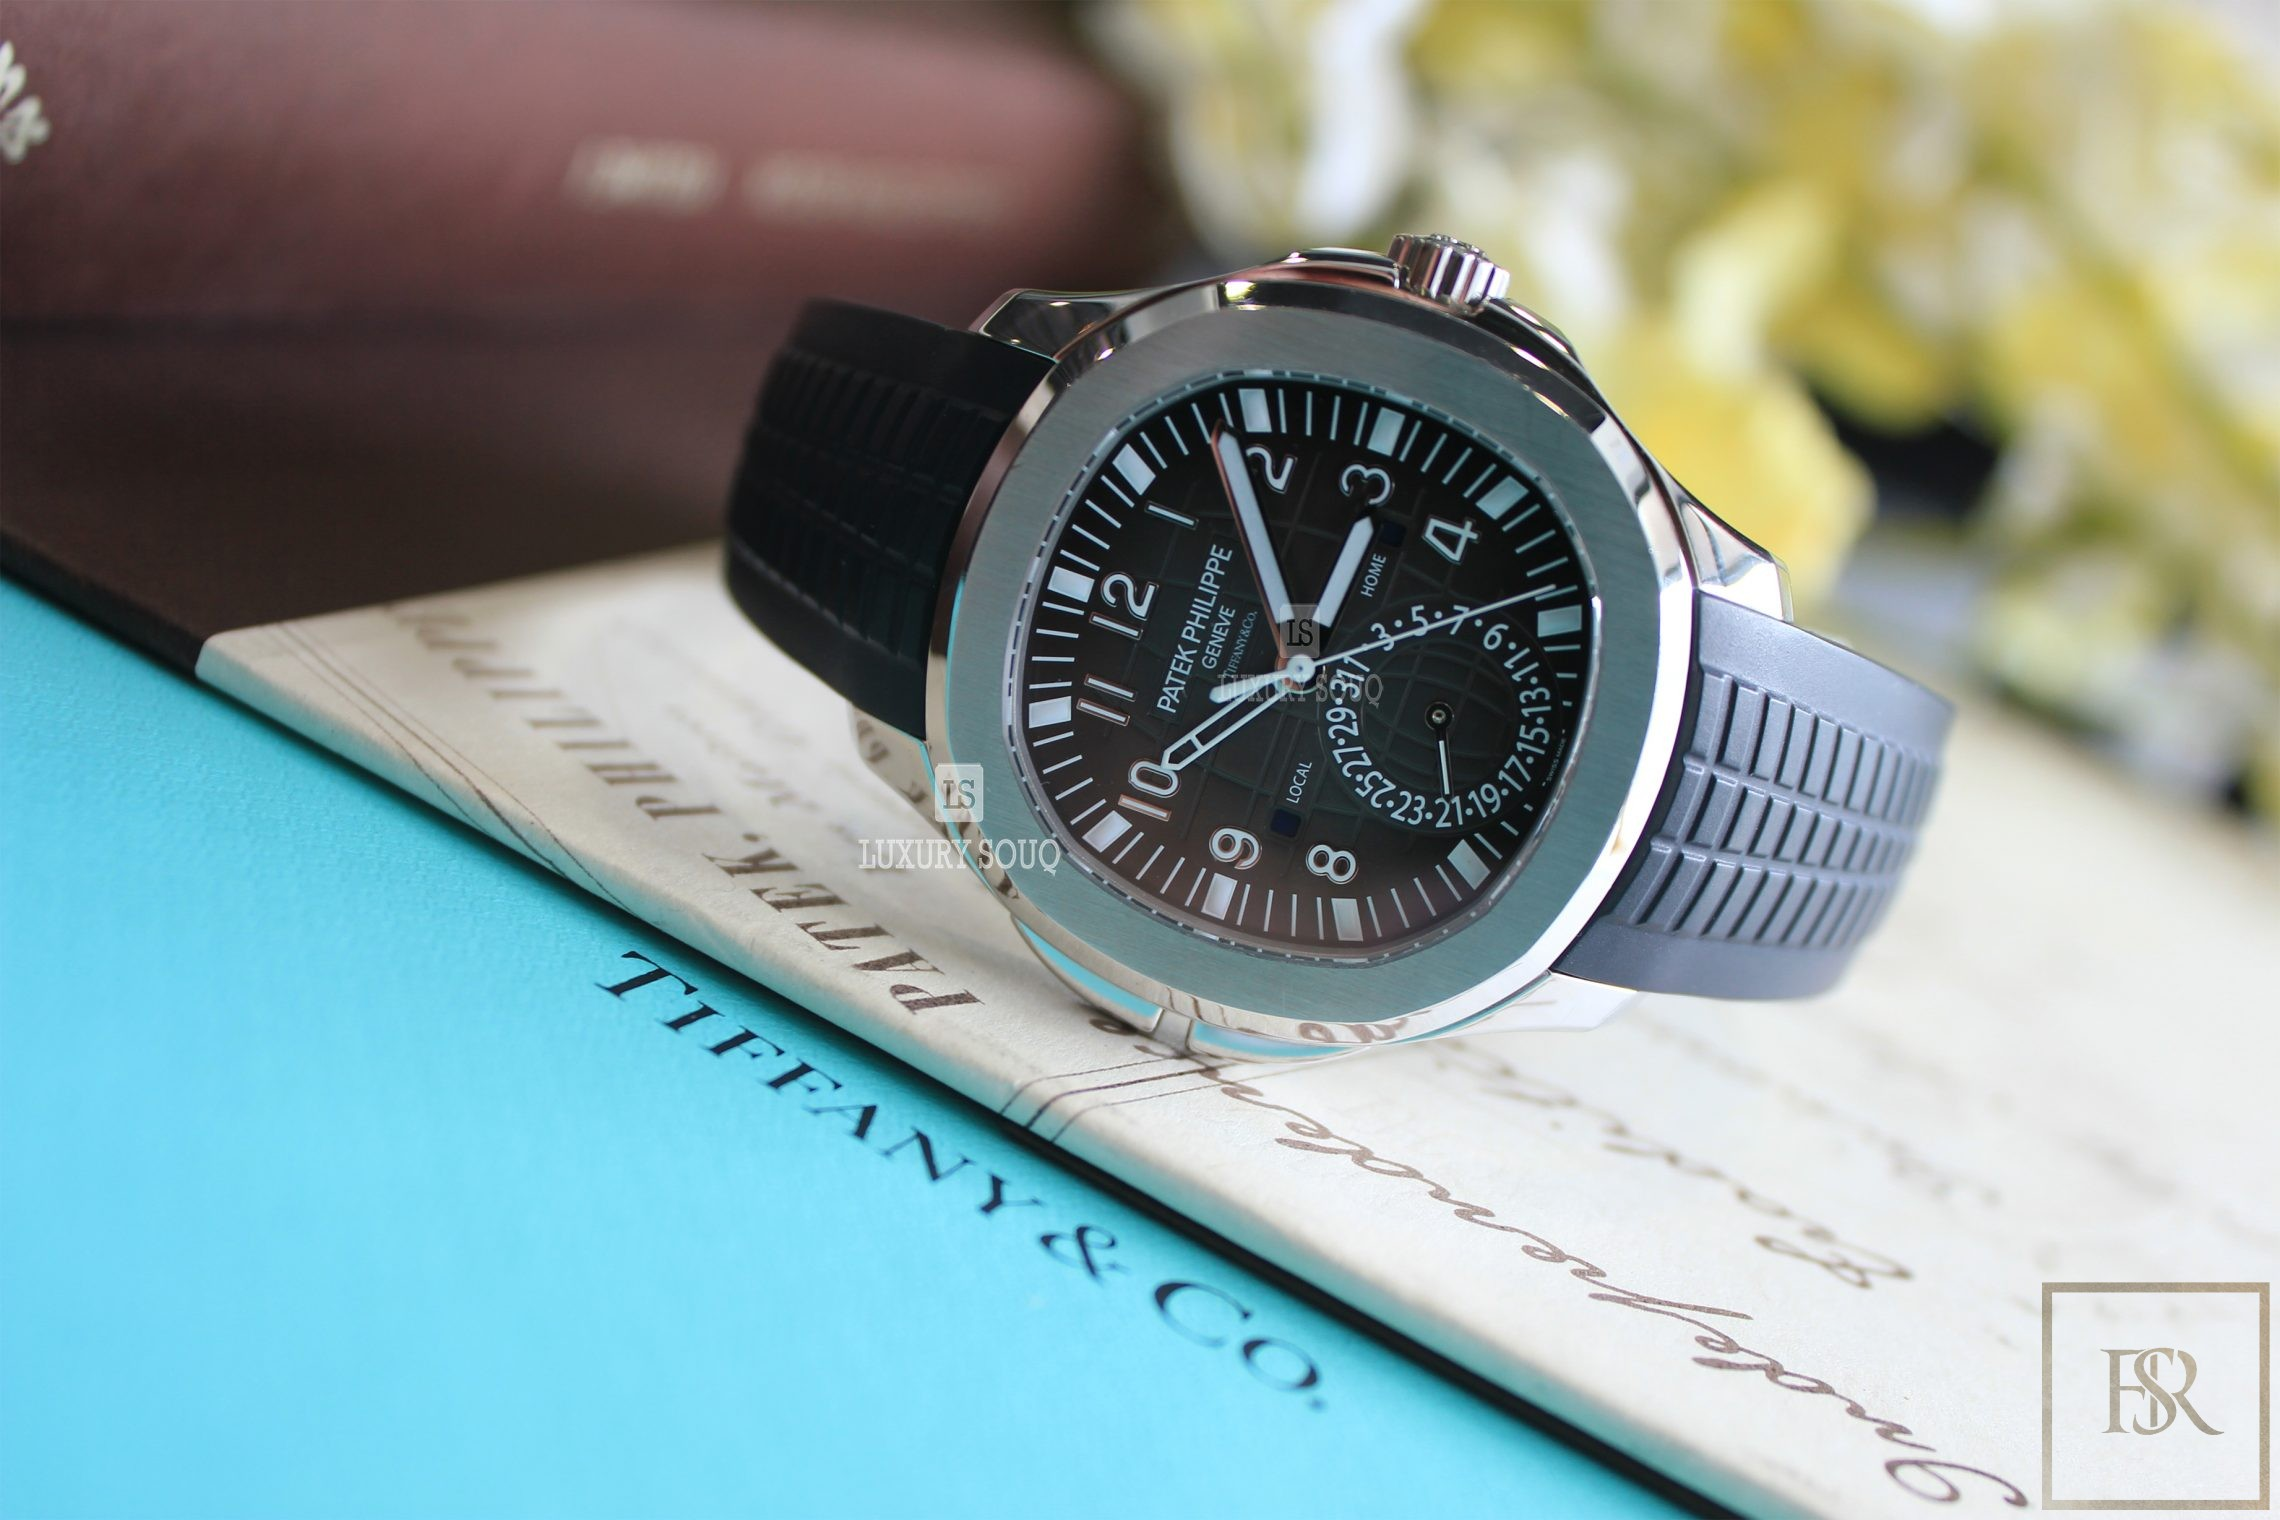 Watch PATEK PHILIPPE Aquanaut Travel Time Tiffany & CO.  for sale For Super Rich